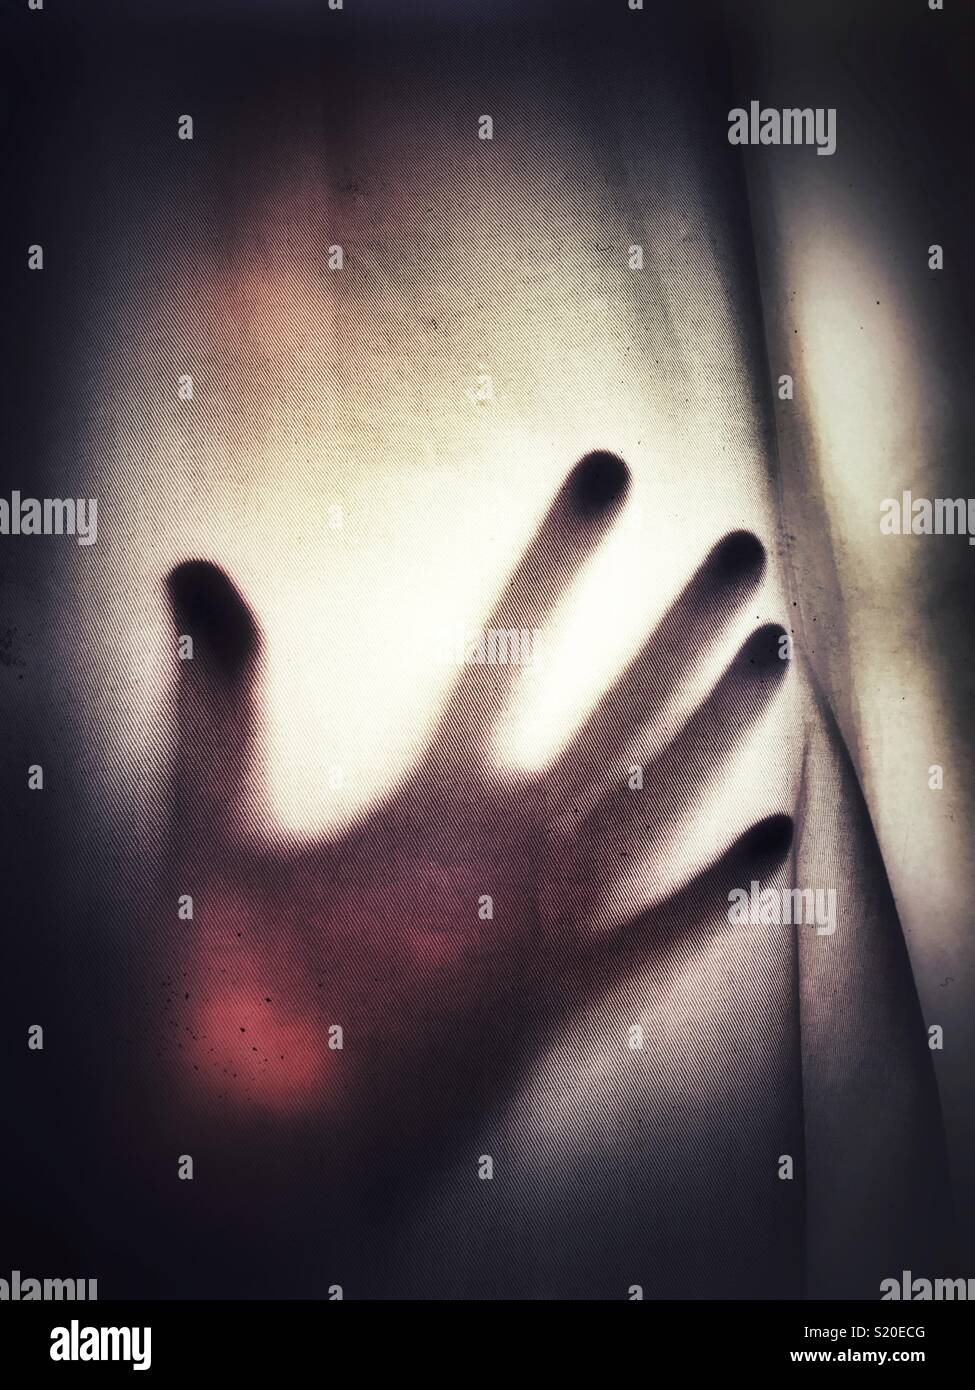 A silhouette of an outstretched hand against a see through fabric Stock Photo